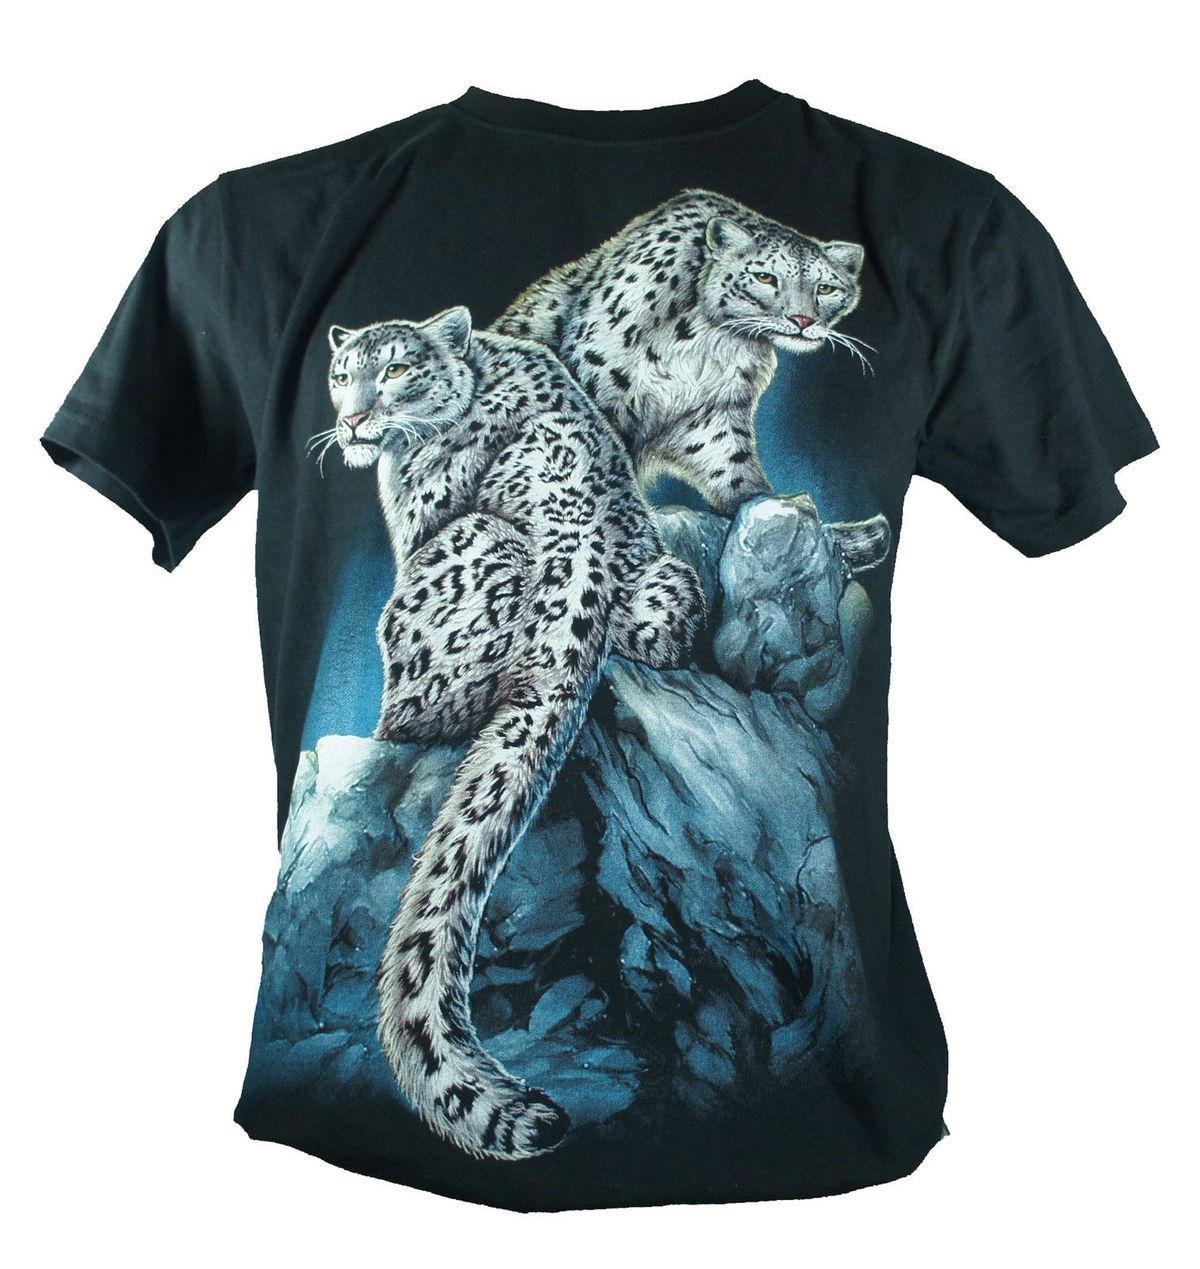 058298c06f29 Snow Leopard Large Size New 2018 New Arrival Men T Shirt New Fashion Summer  Straight 100% Cotton T Shirt S Tees Shirts From Gaobei03, $11.48| DHgate.Com